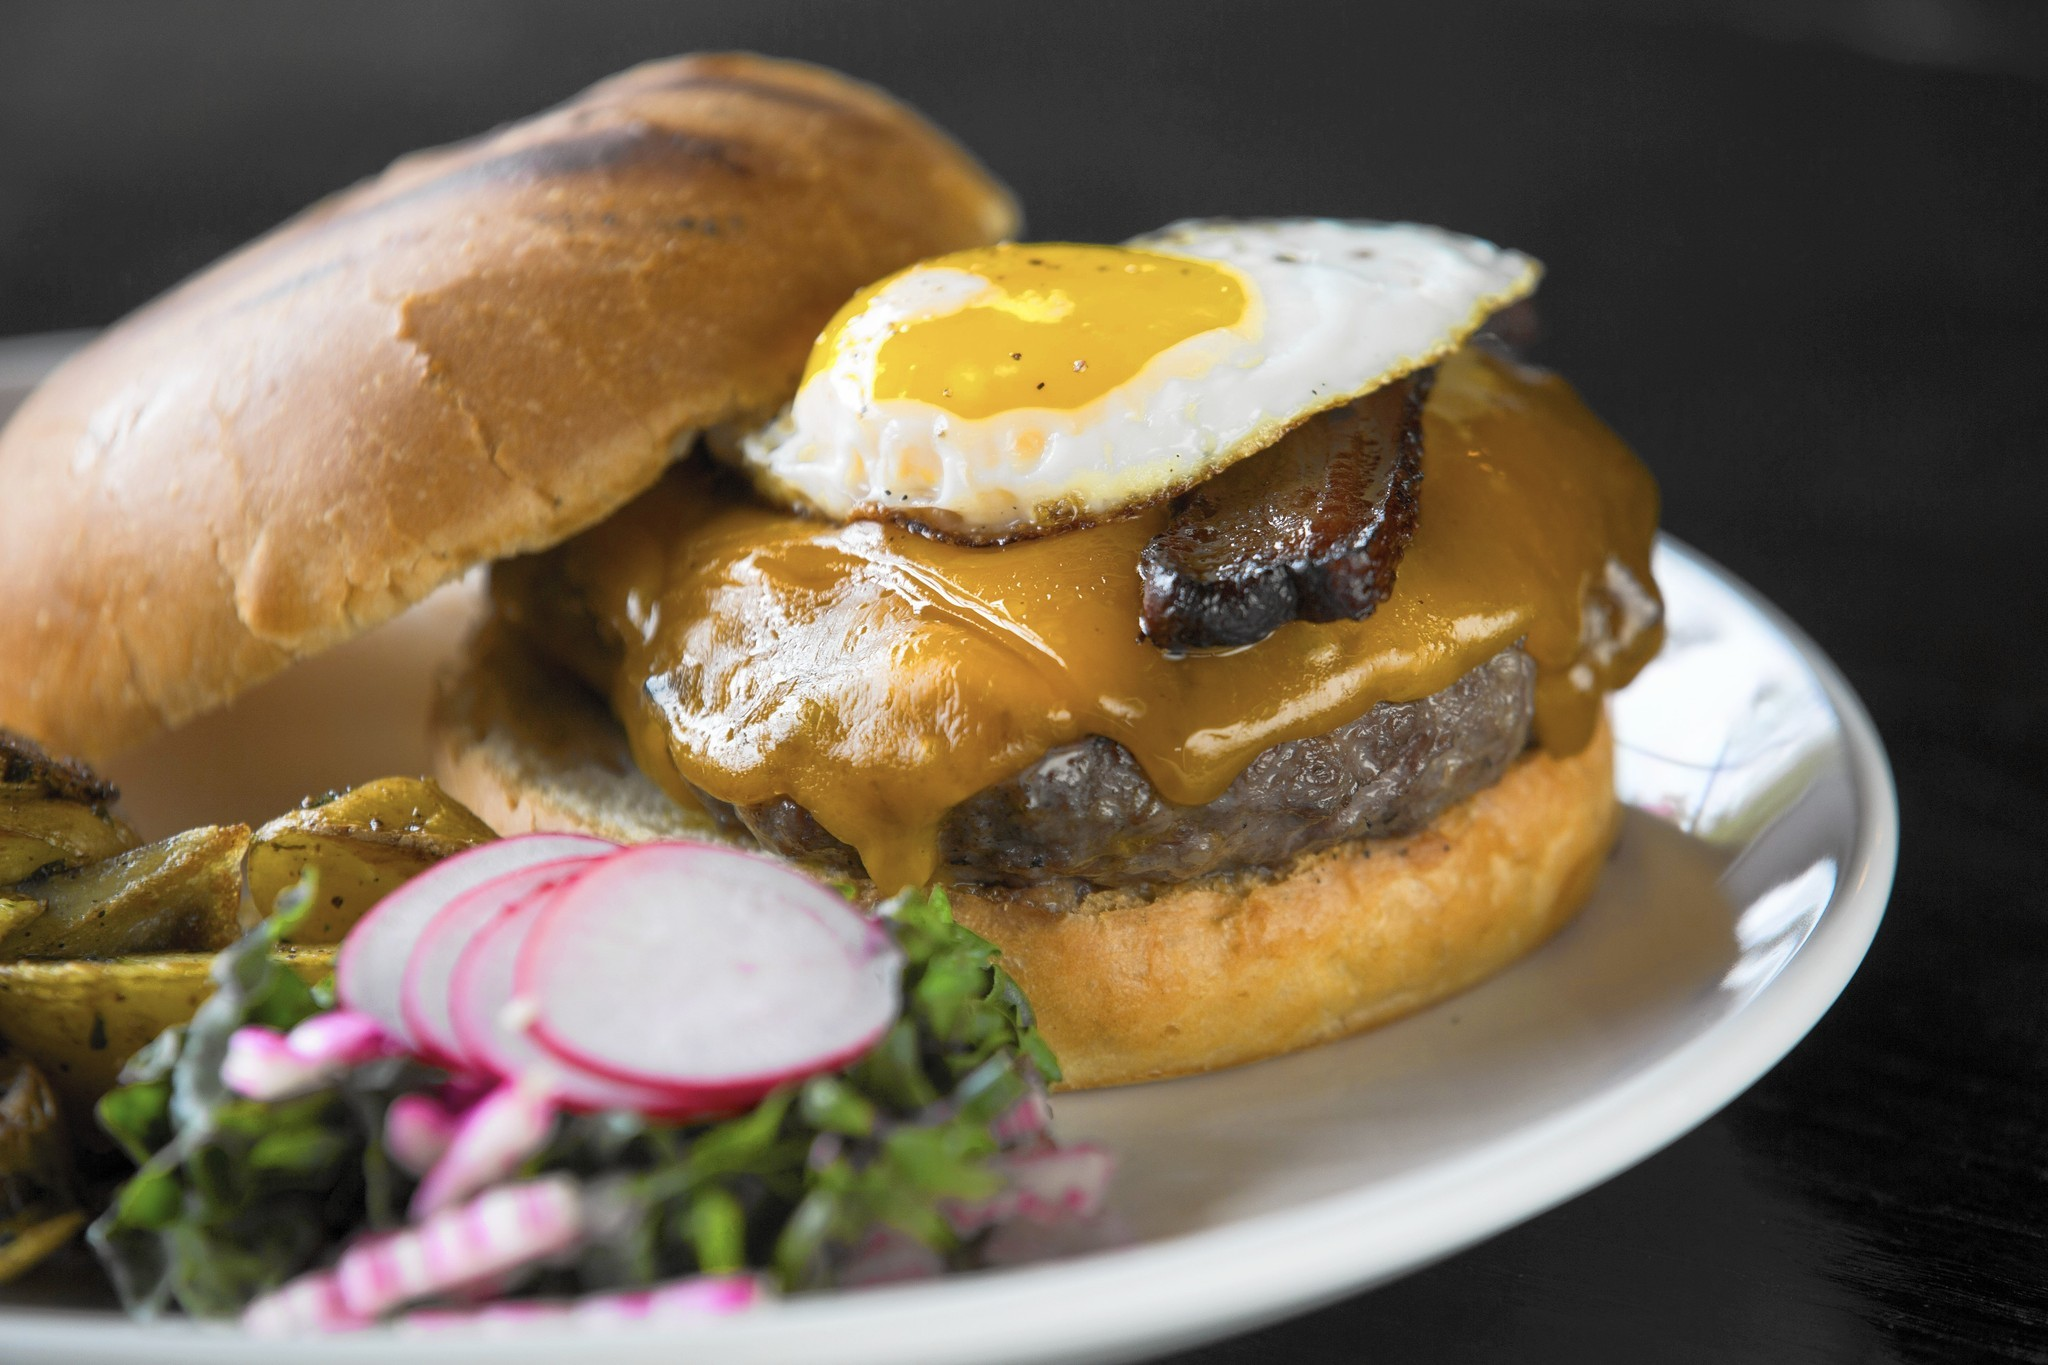 Brunch burger at Fountainhead is one of Chicago's best